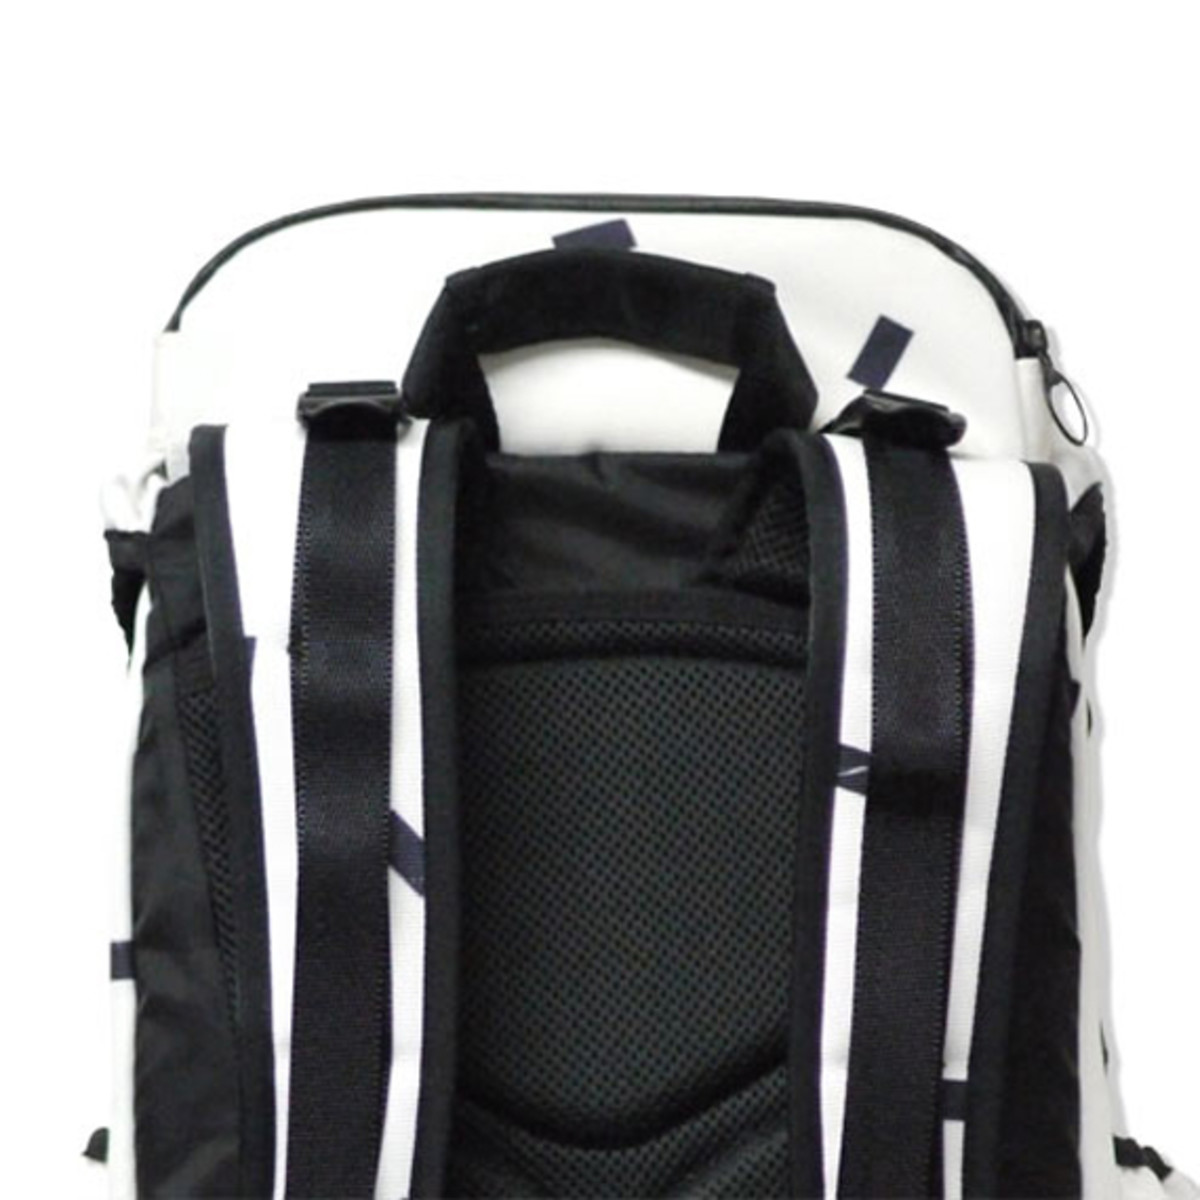 a.four-immun-recto-backpack-09